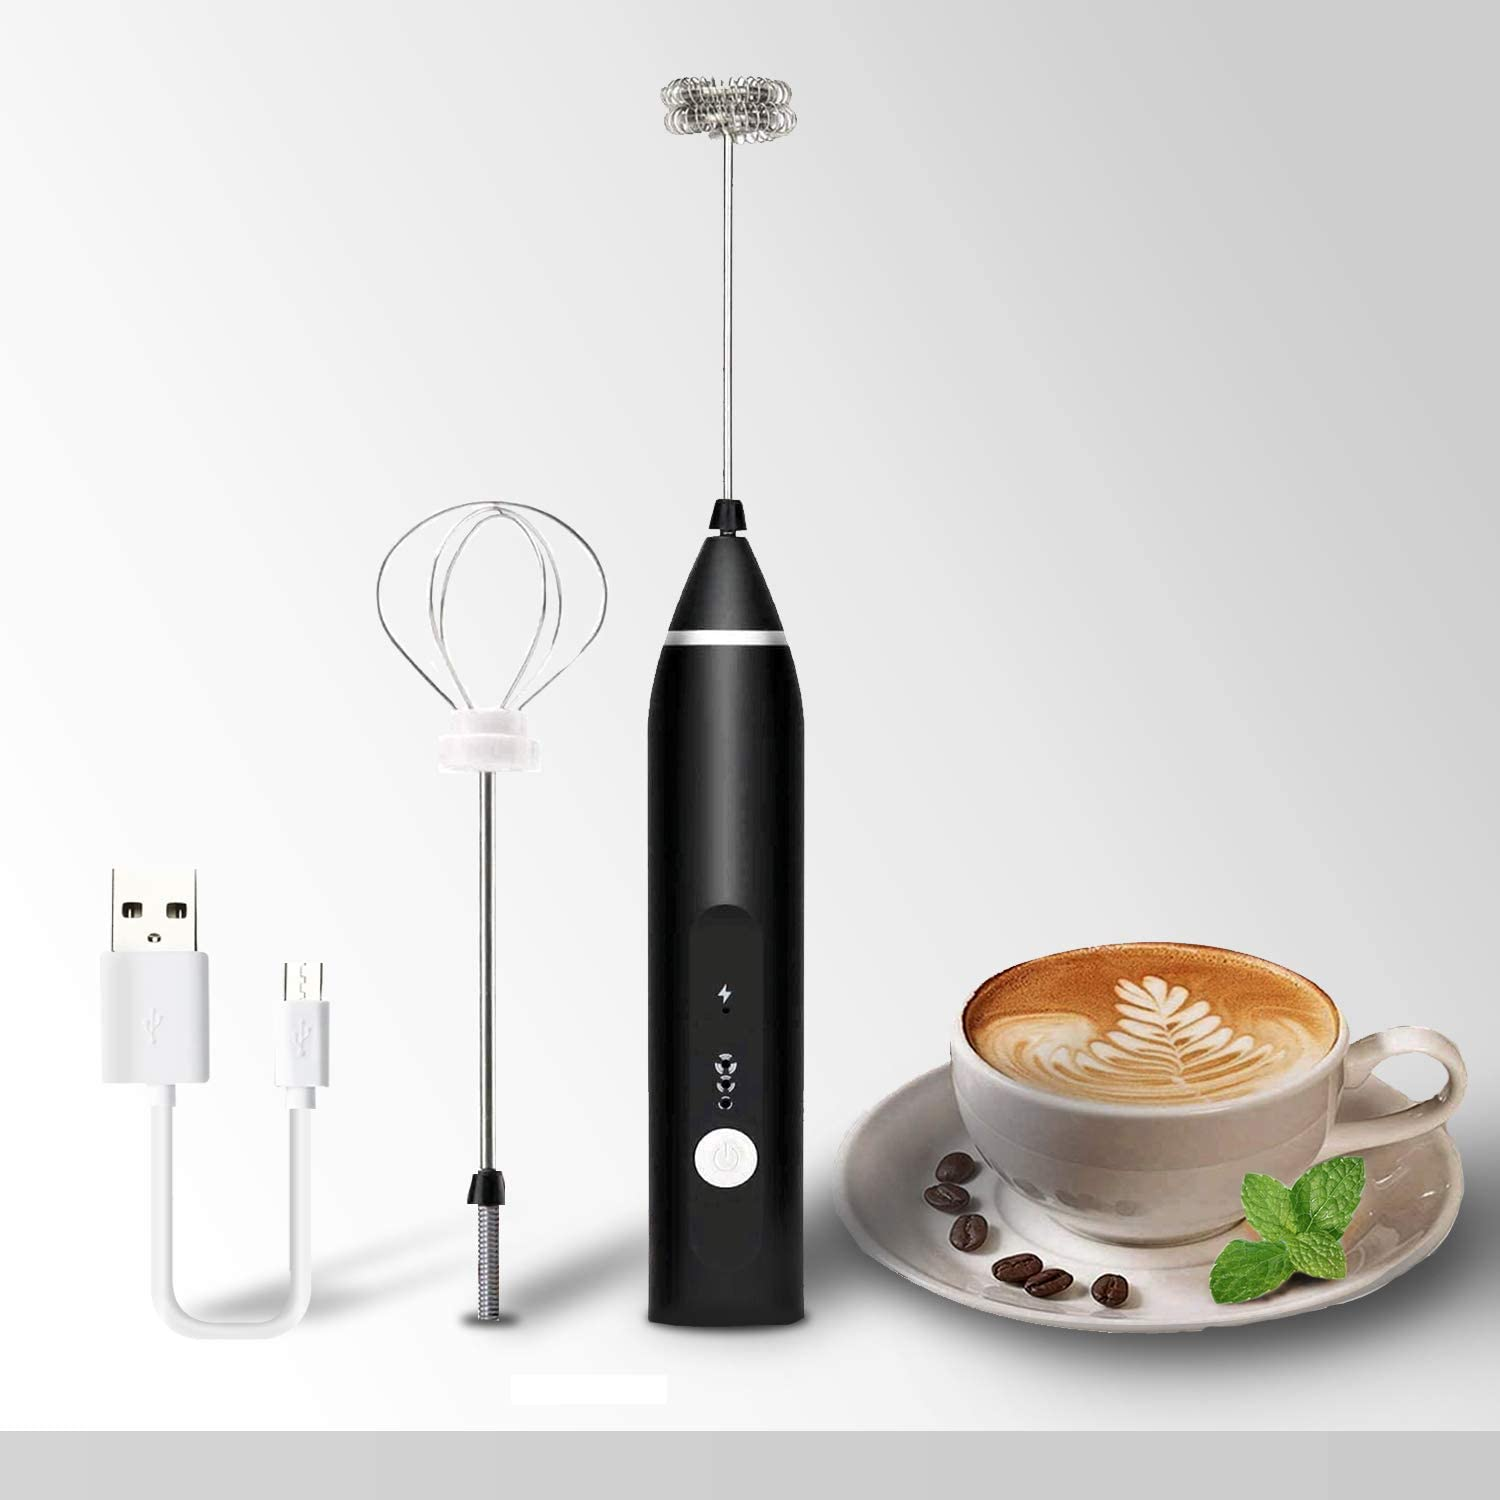 Milk Frother 2 Spring Whisk Heads, Electric Handheld Foam Maker 3 Speeds Egg Beater Drink Mixer, USB Rechargeable Mini Blender for Coffee Latte Cappuccino Hot Chocolate